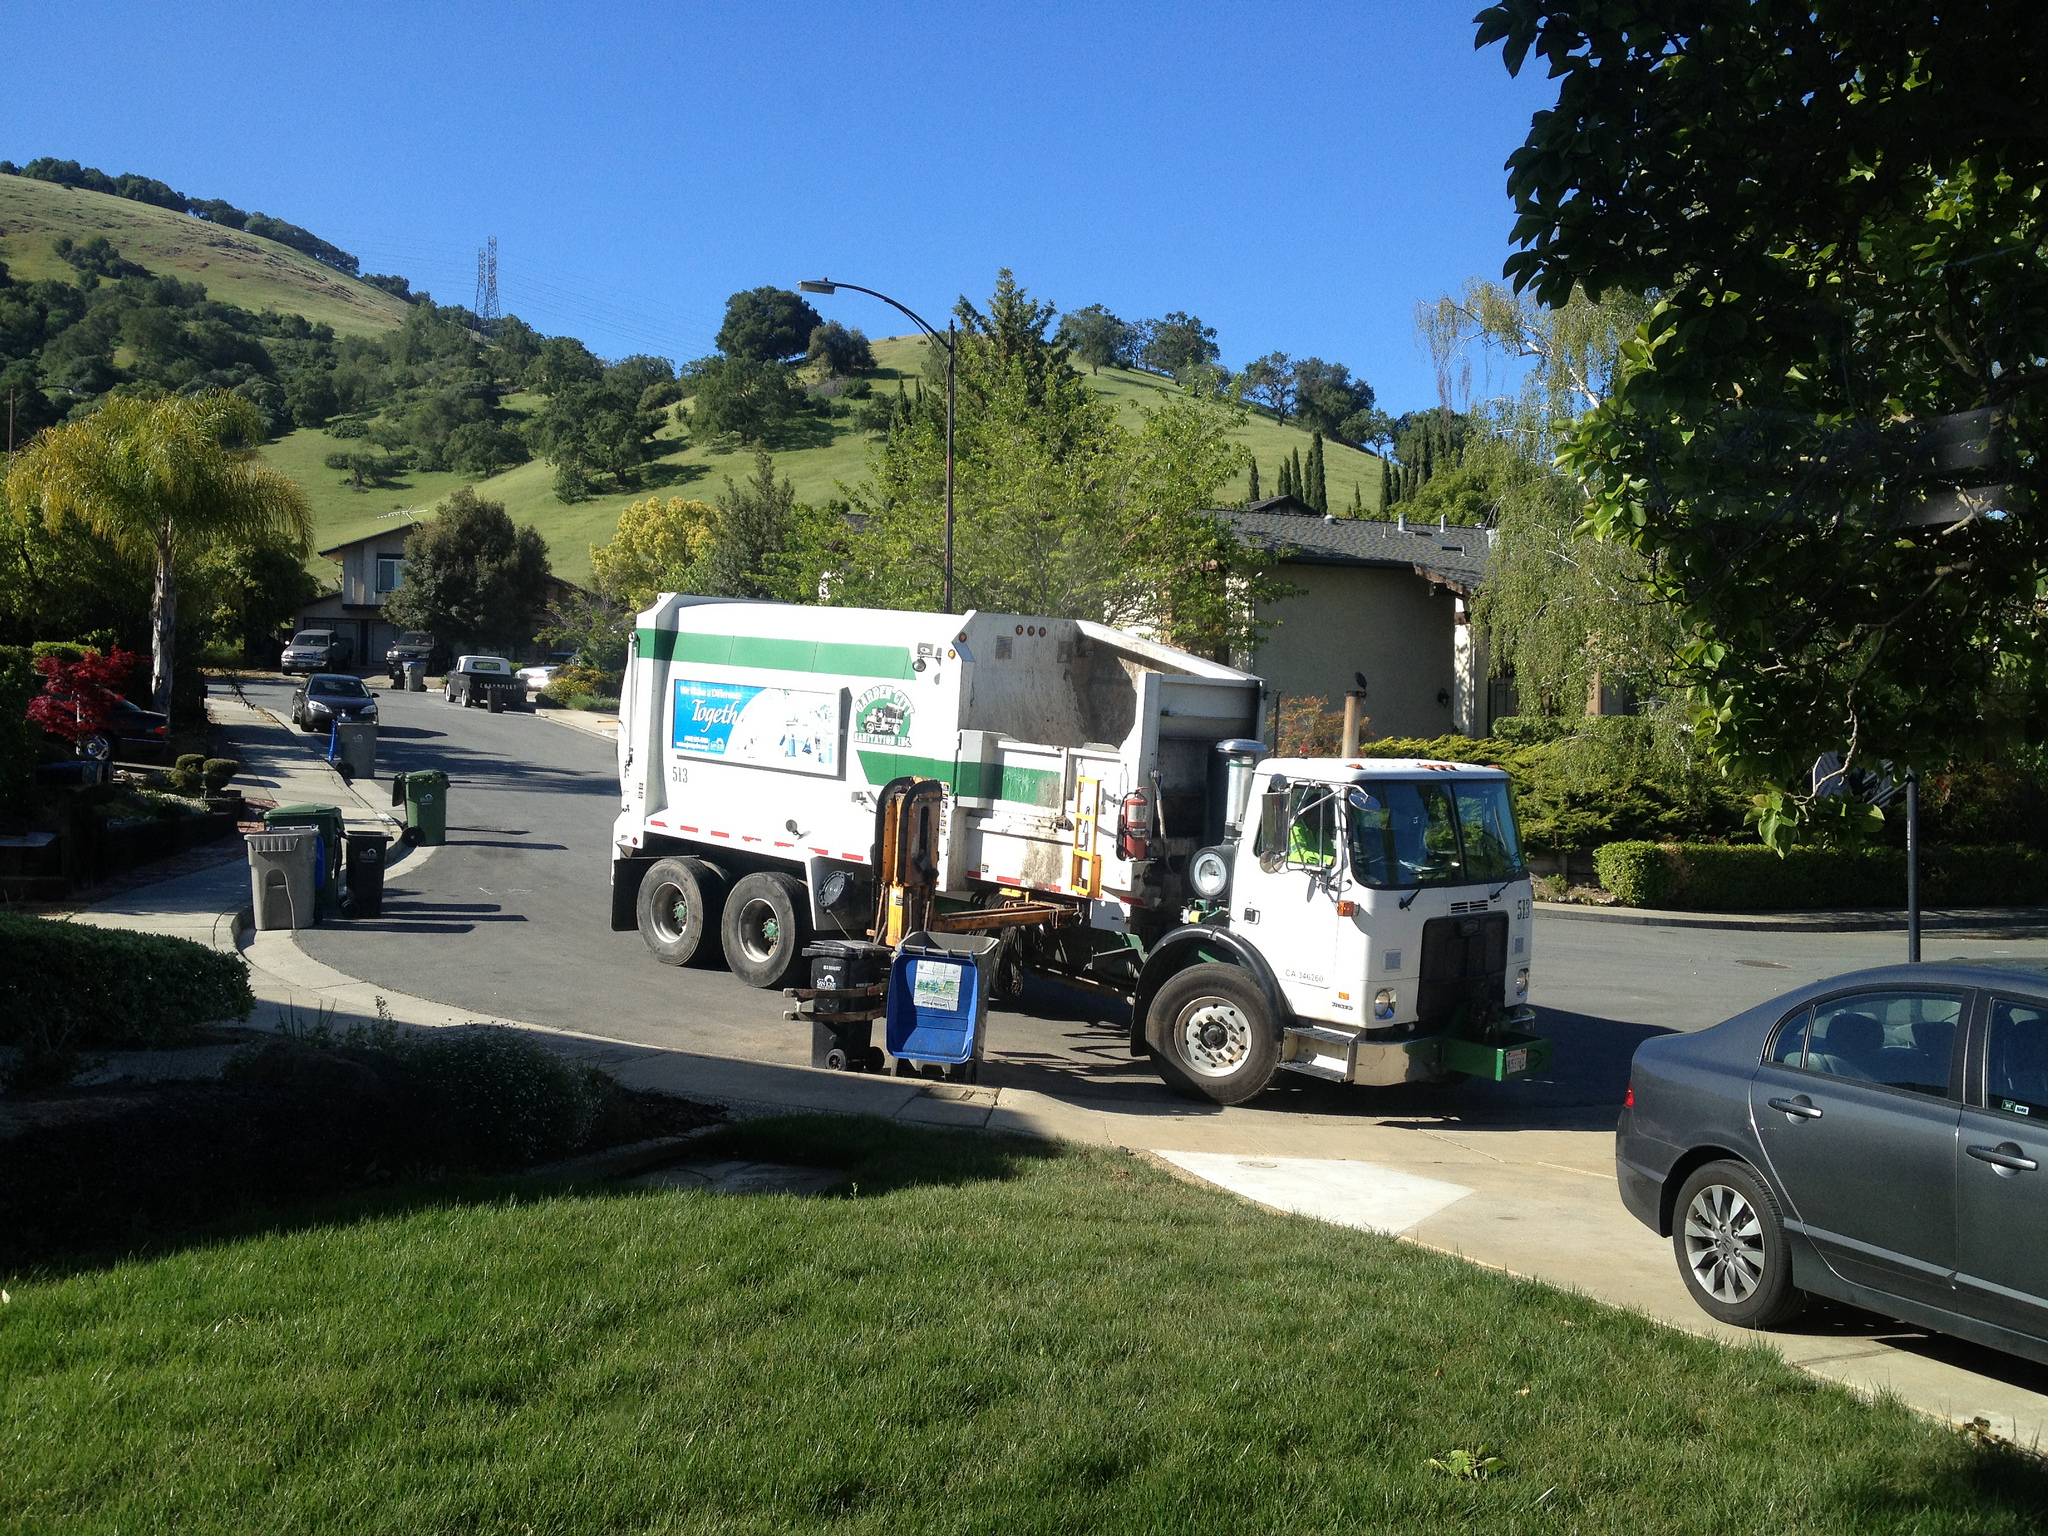 Garbage trucks in San Jose sweep the entire city every week.